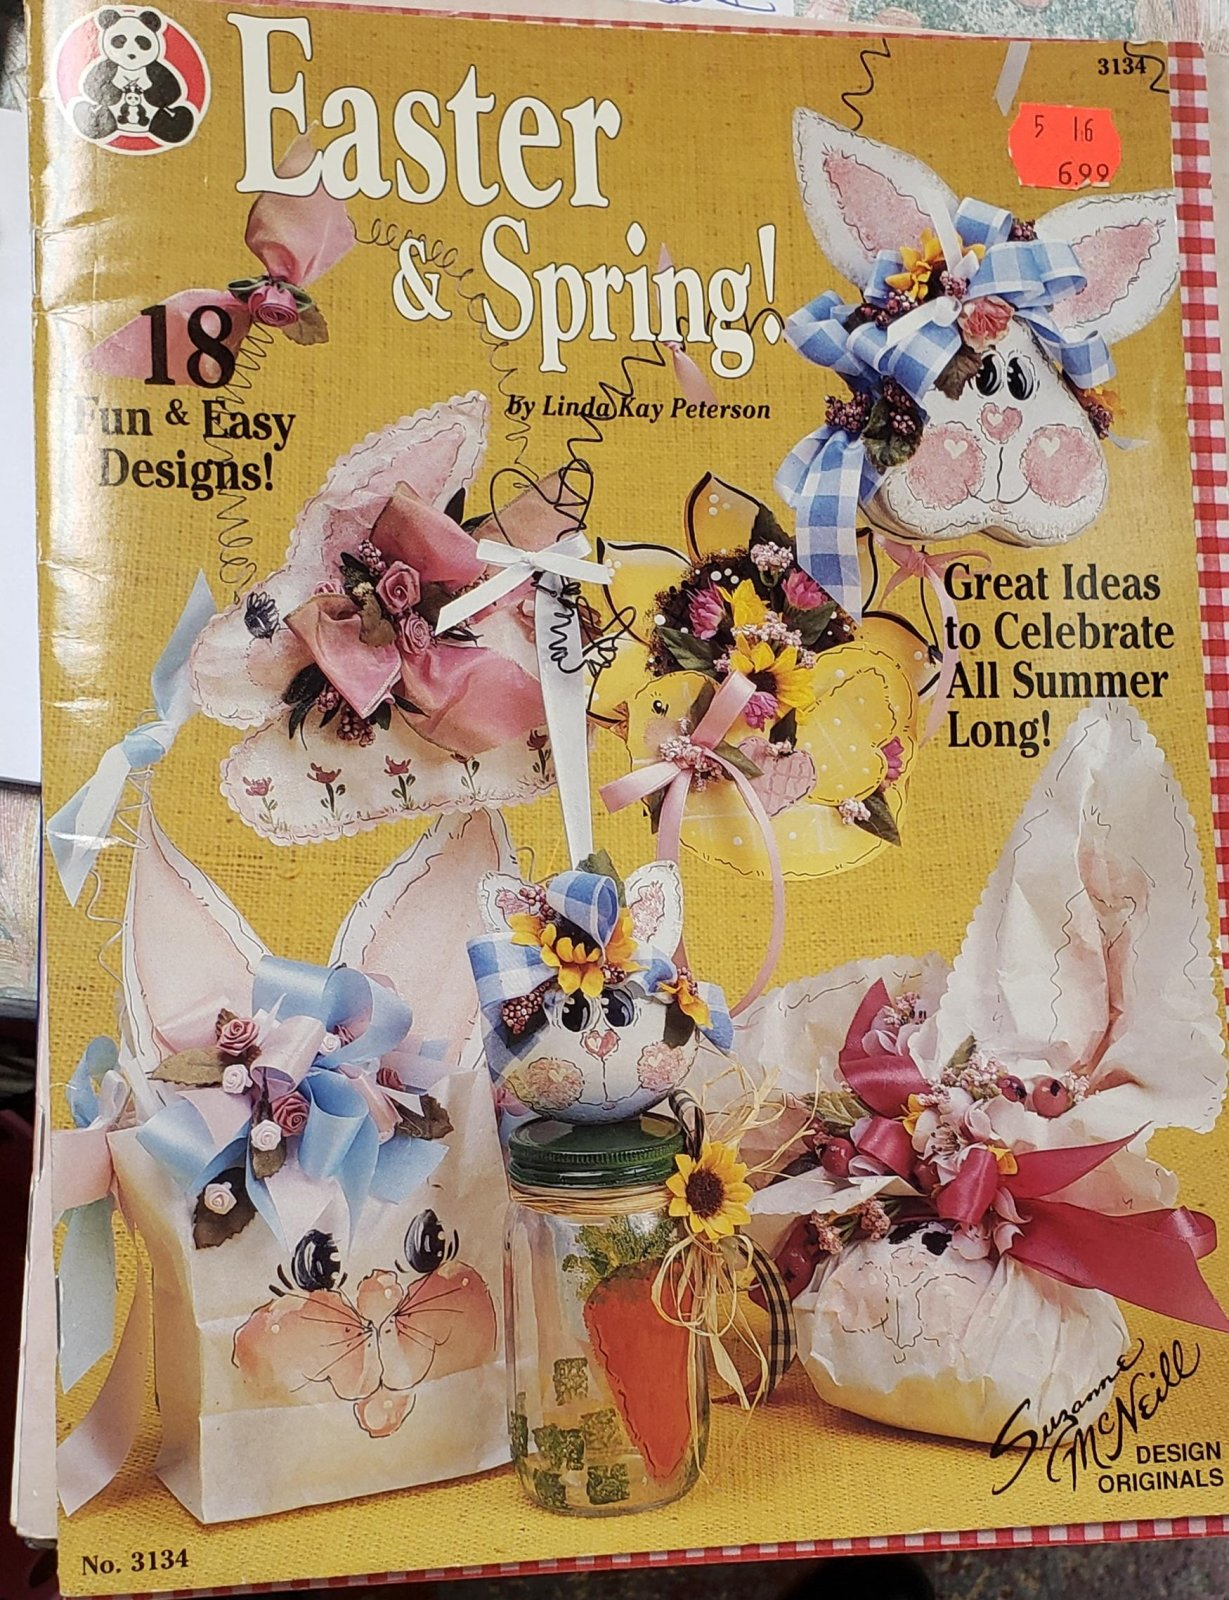 Easter & Spring Crafts by Suzanne McNeill